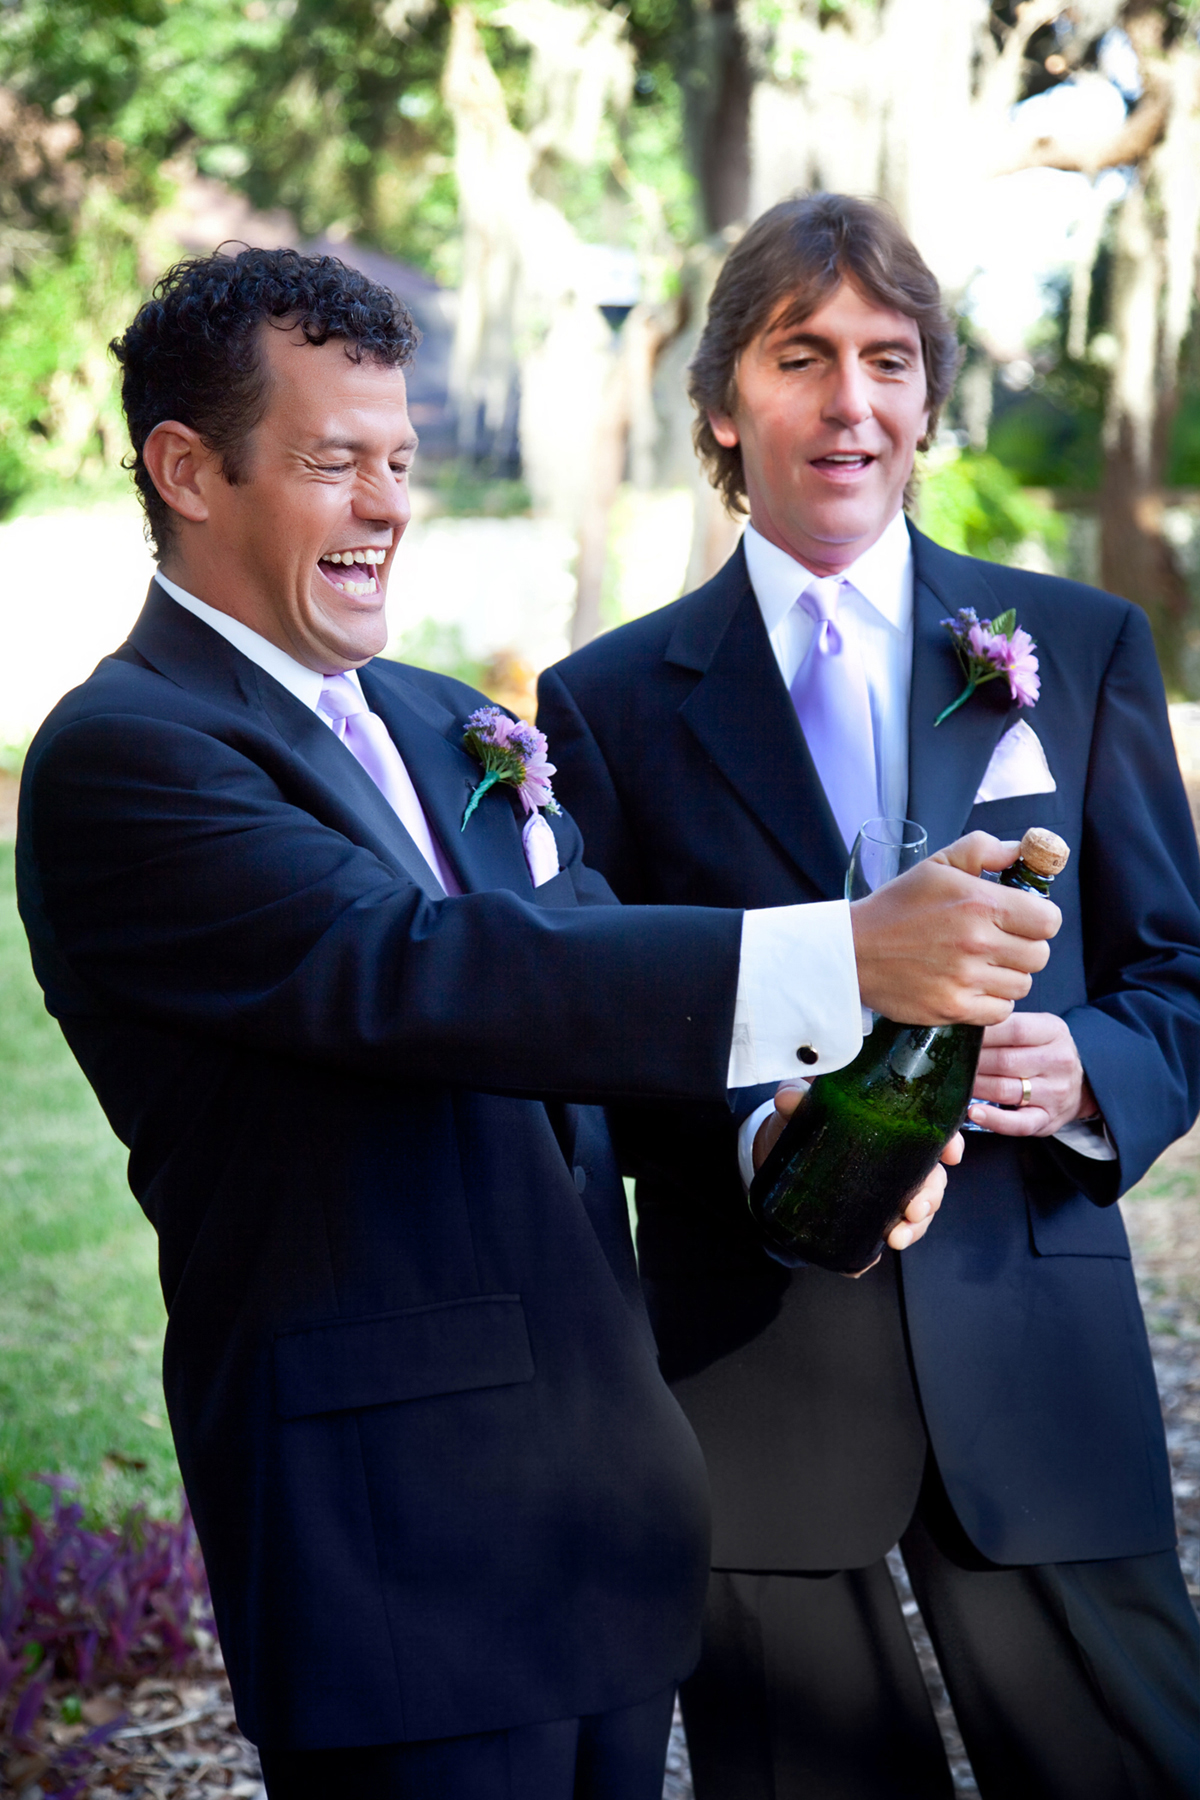 wedding-officiant-gay-couple-opening-champagne-opti.jpg